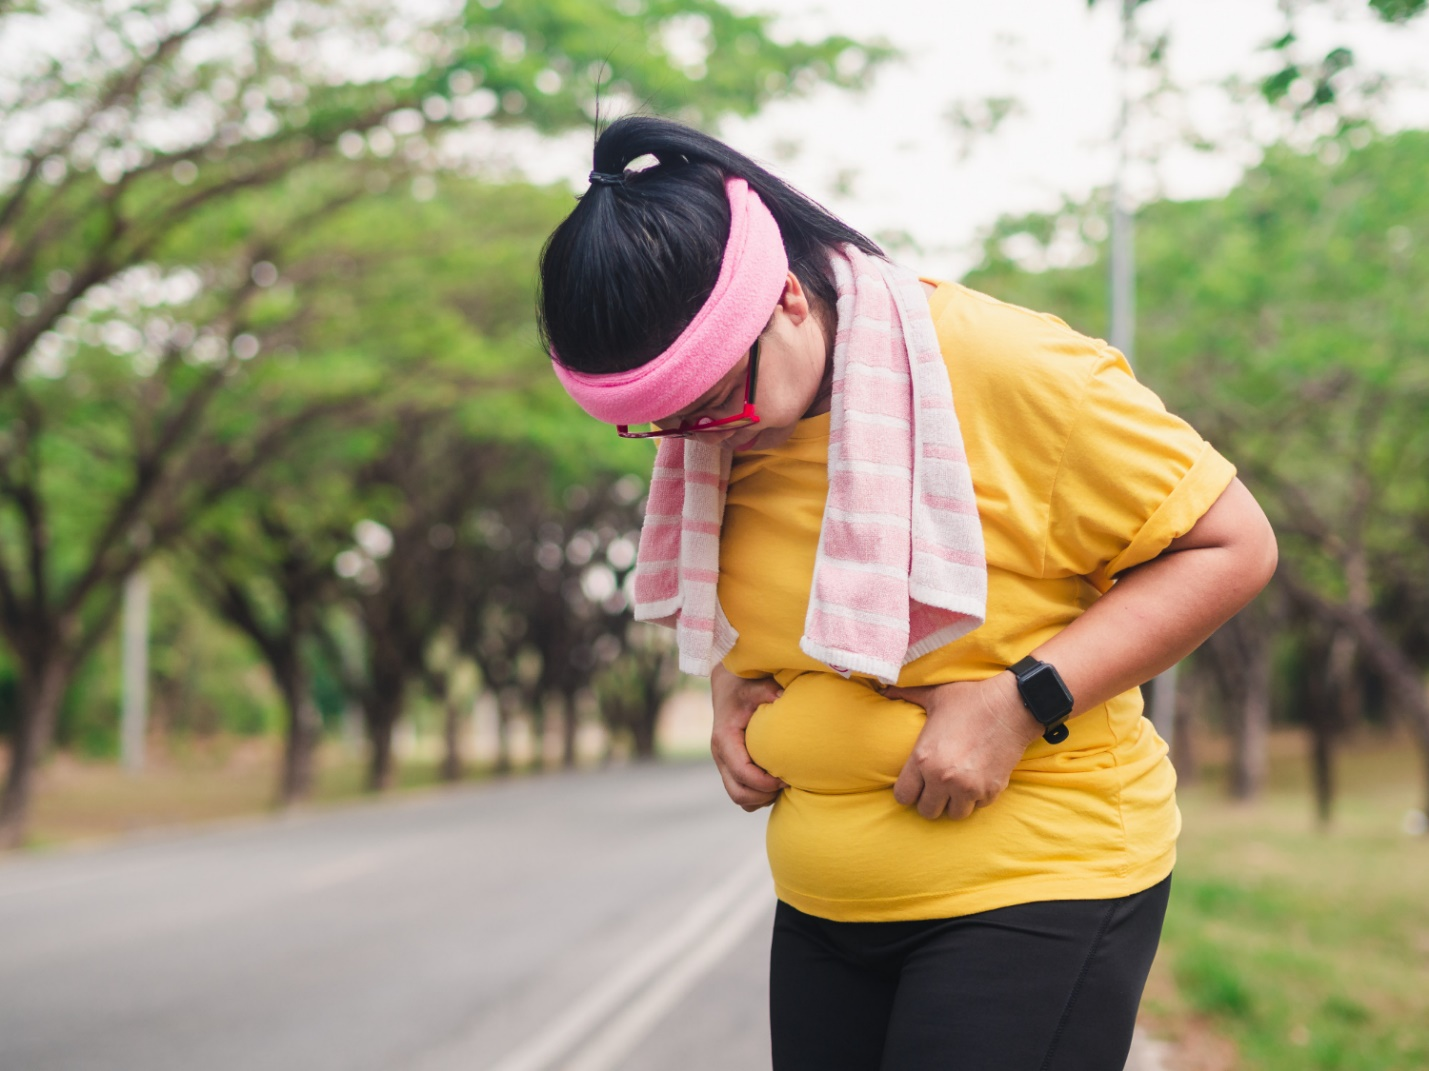 C:\Users\Dell\Downloads\overweight-woman-holding-her-belly-weight-loss-concept.jpg